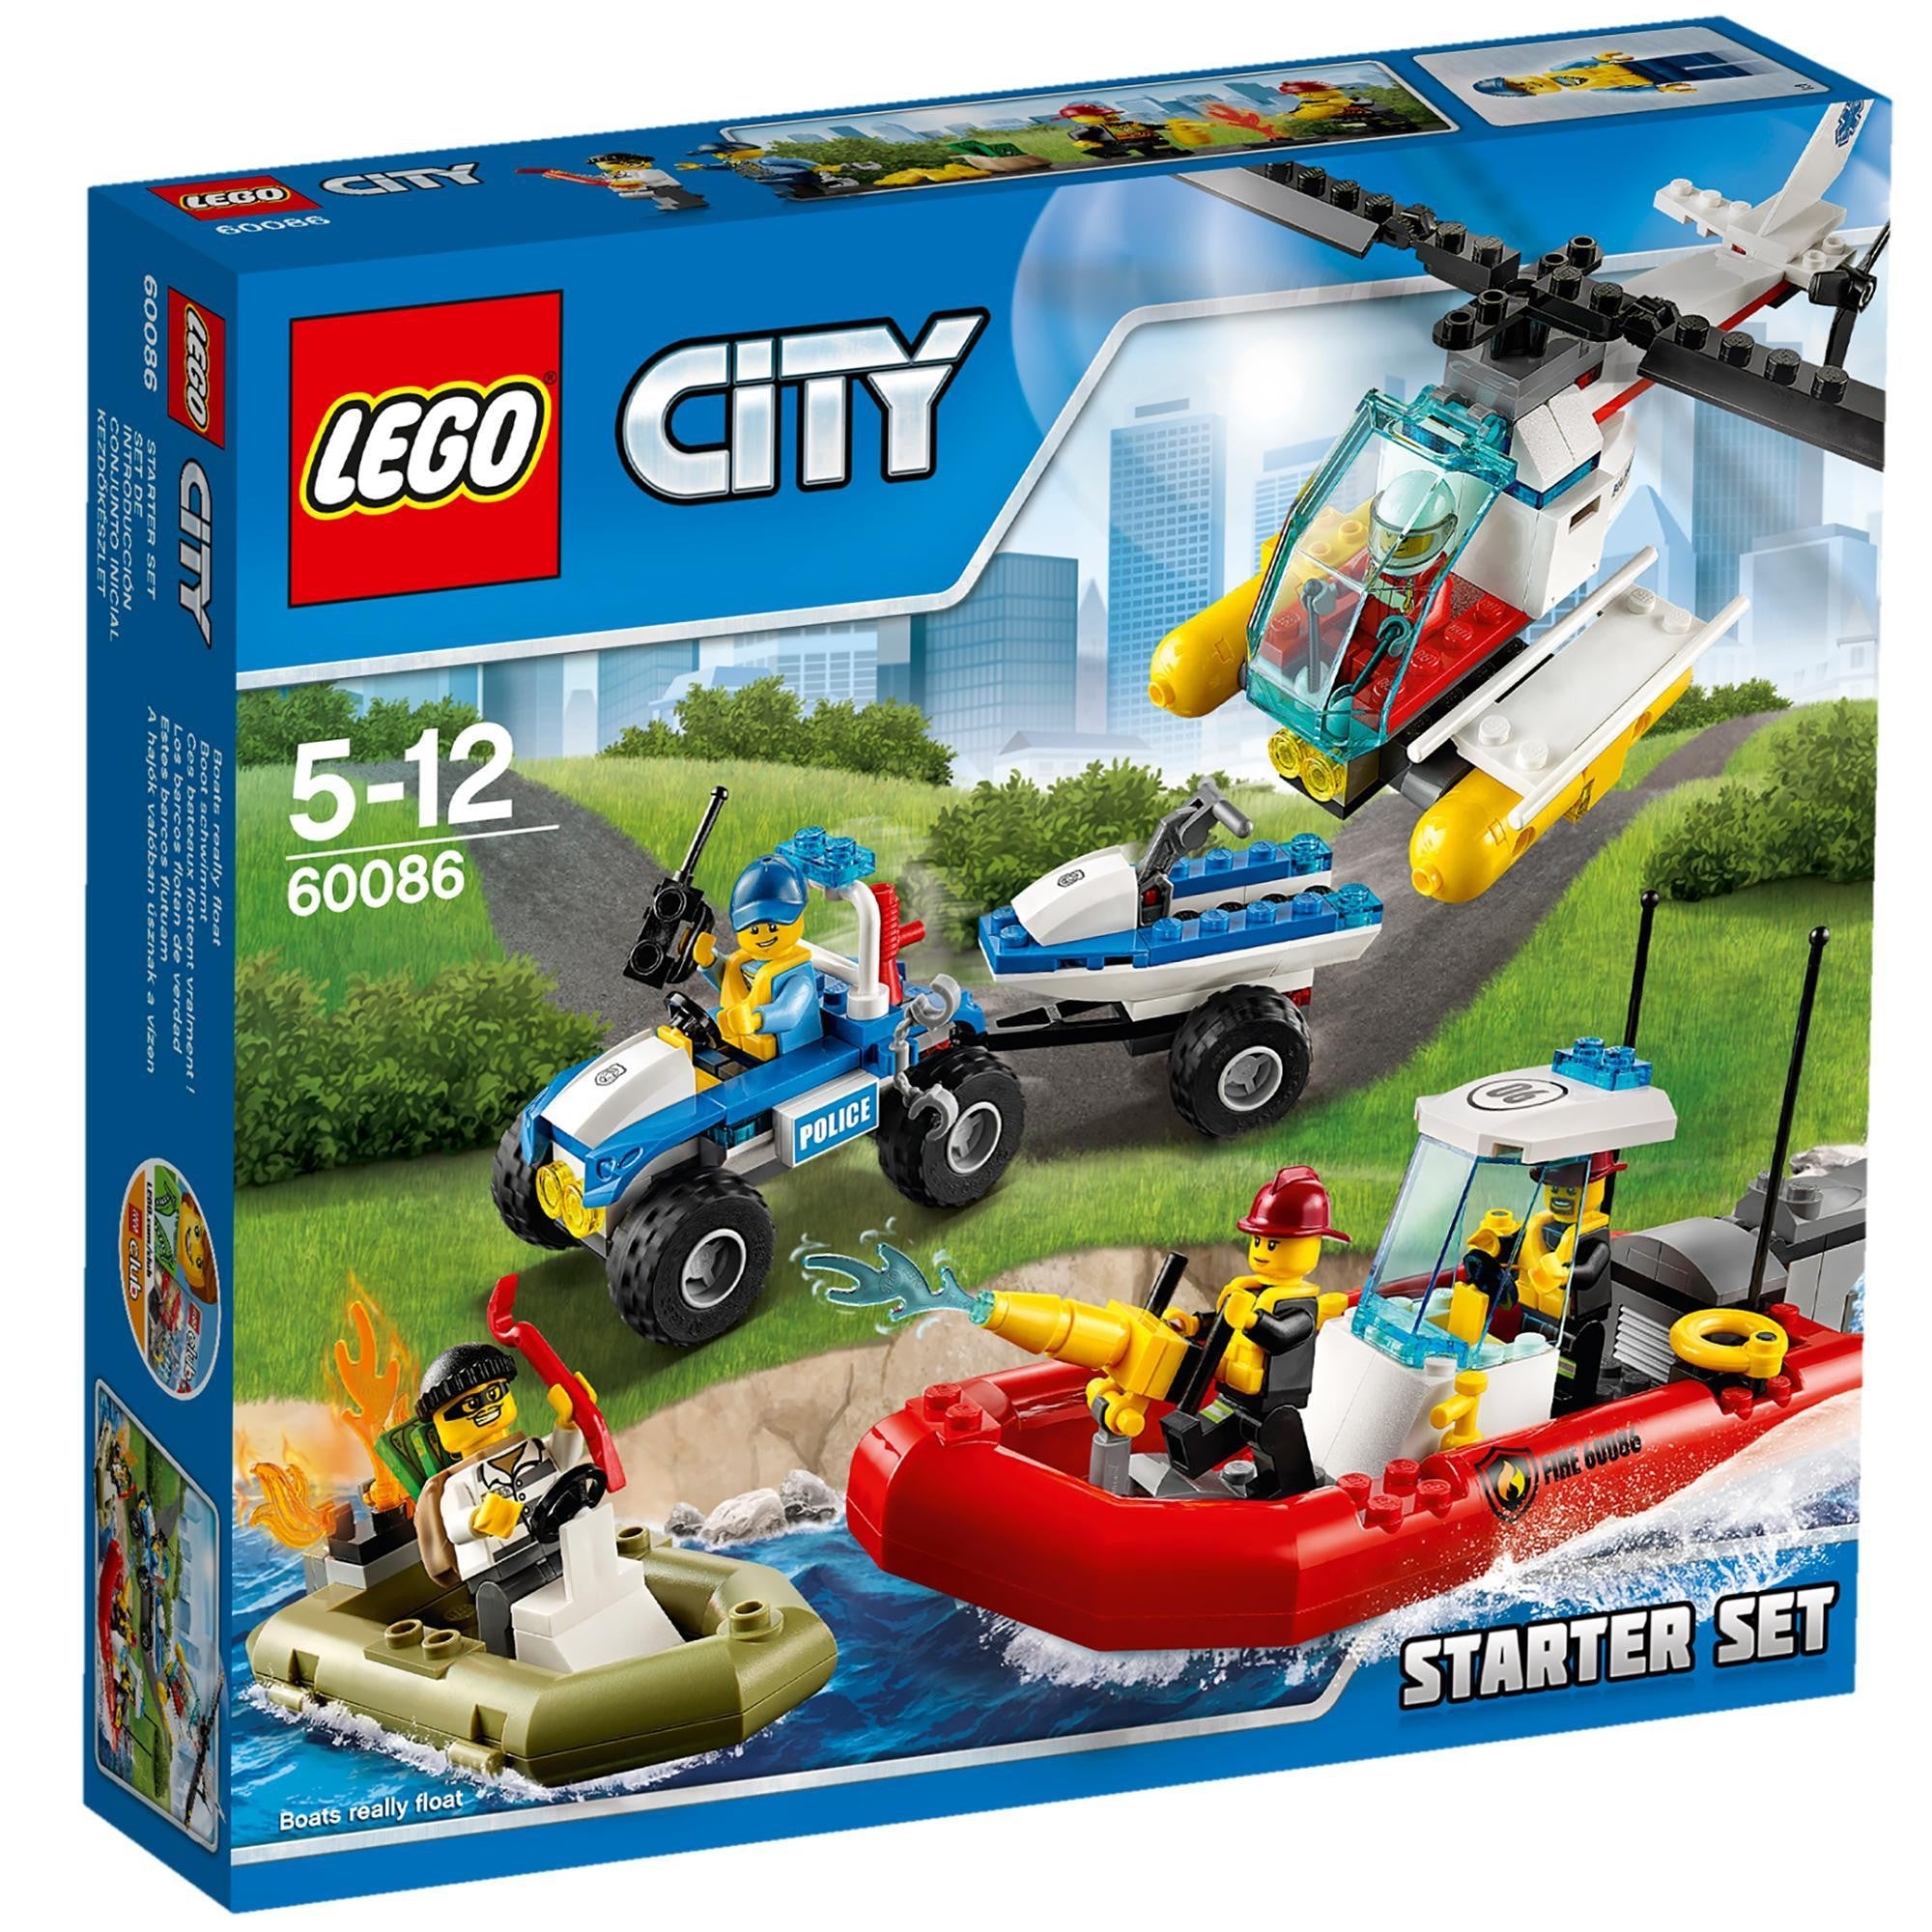 Lego Citry Starter Set